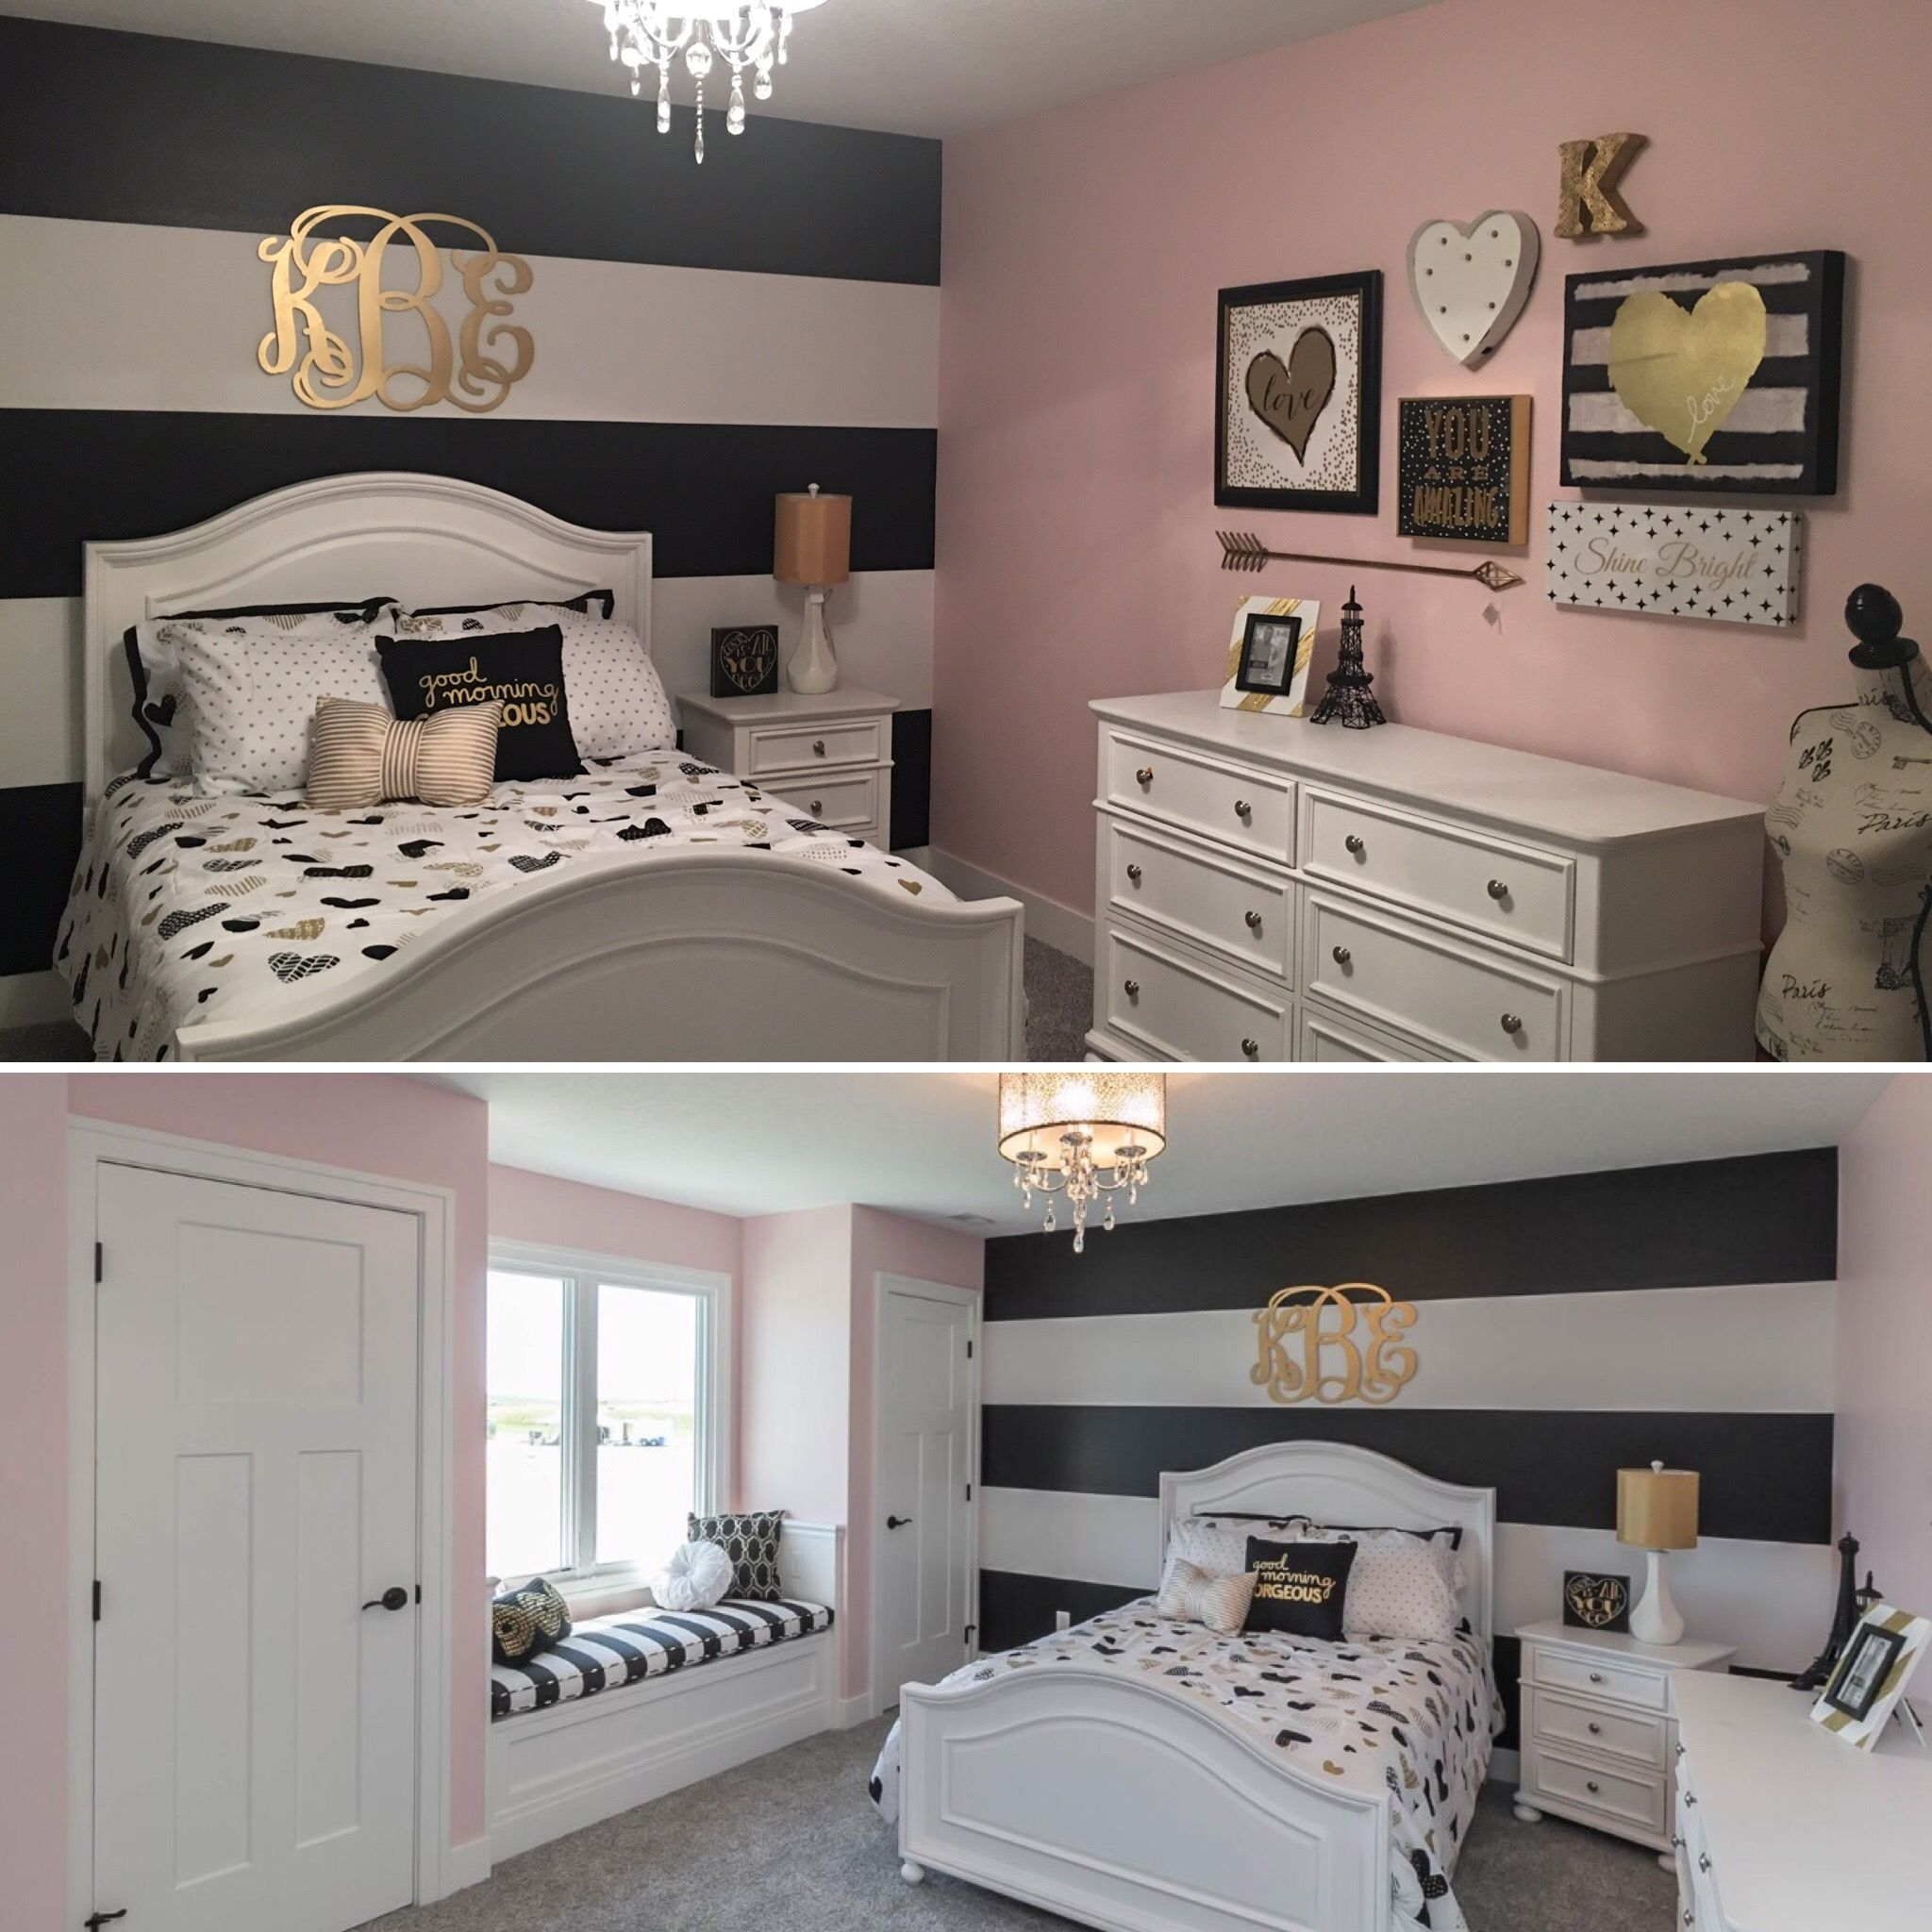 Girls Room With Black And Gold Accents. All Very